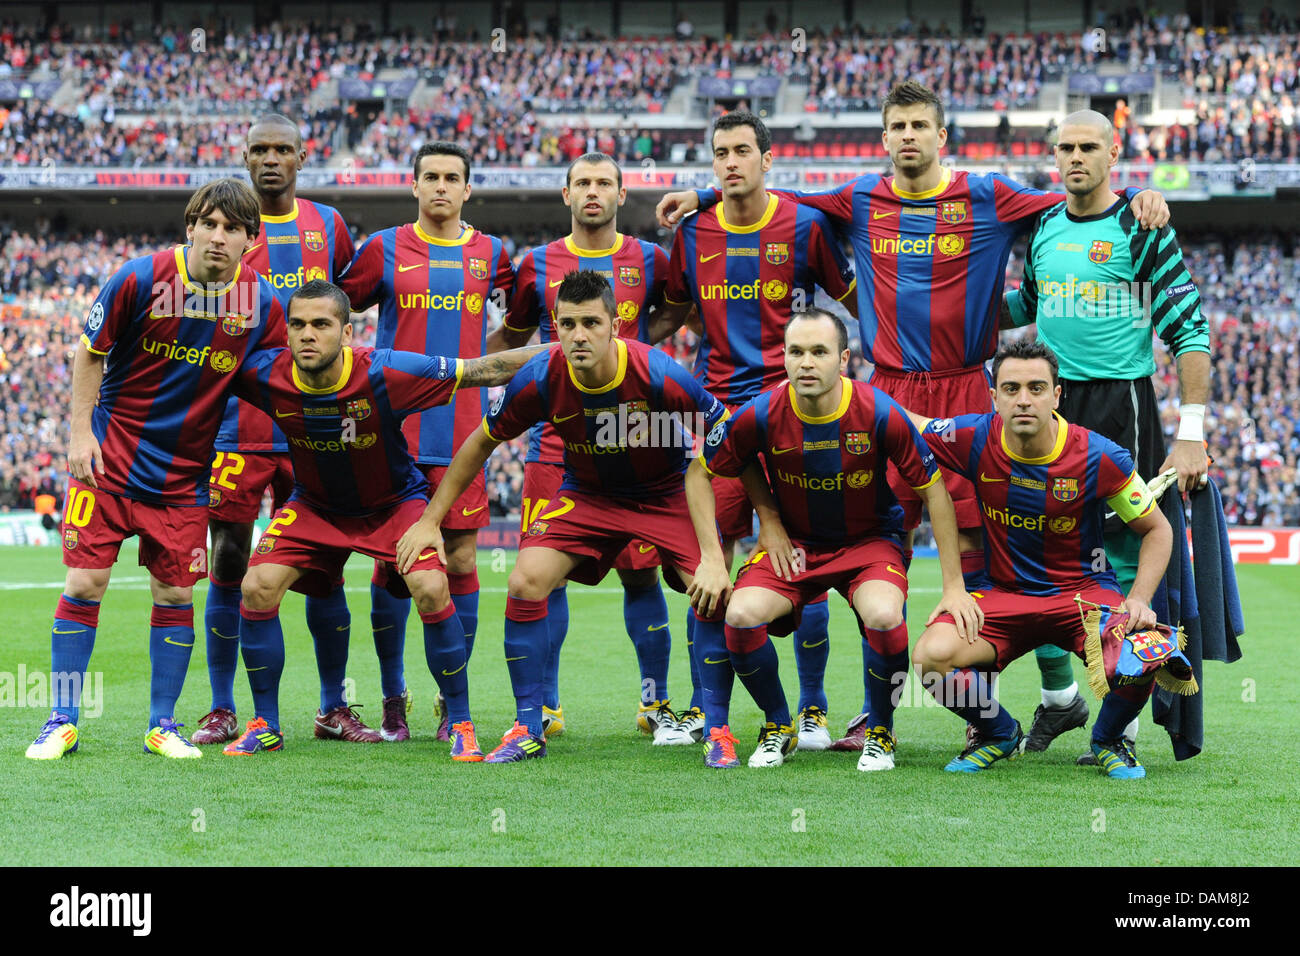 FCBarcelona players pose beofre the UEFA Champions League final match FC Barcelona vs. Manchester United at - Stock Image